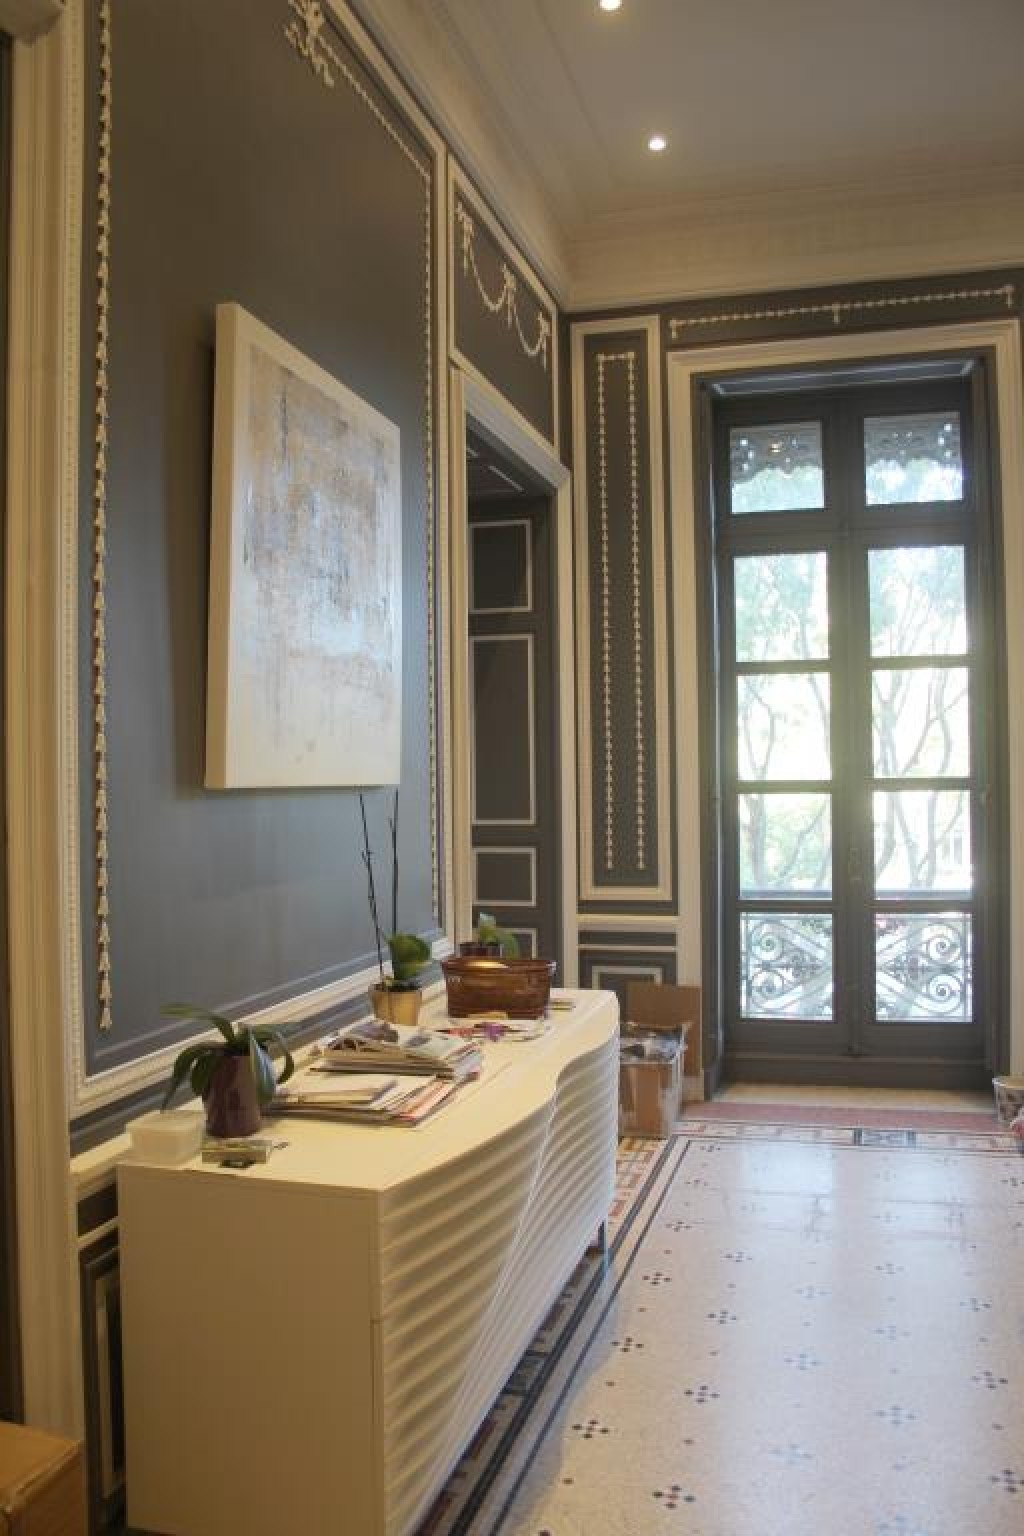 vente appartement bourgeois nimes (15)